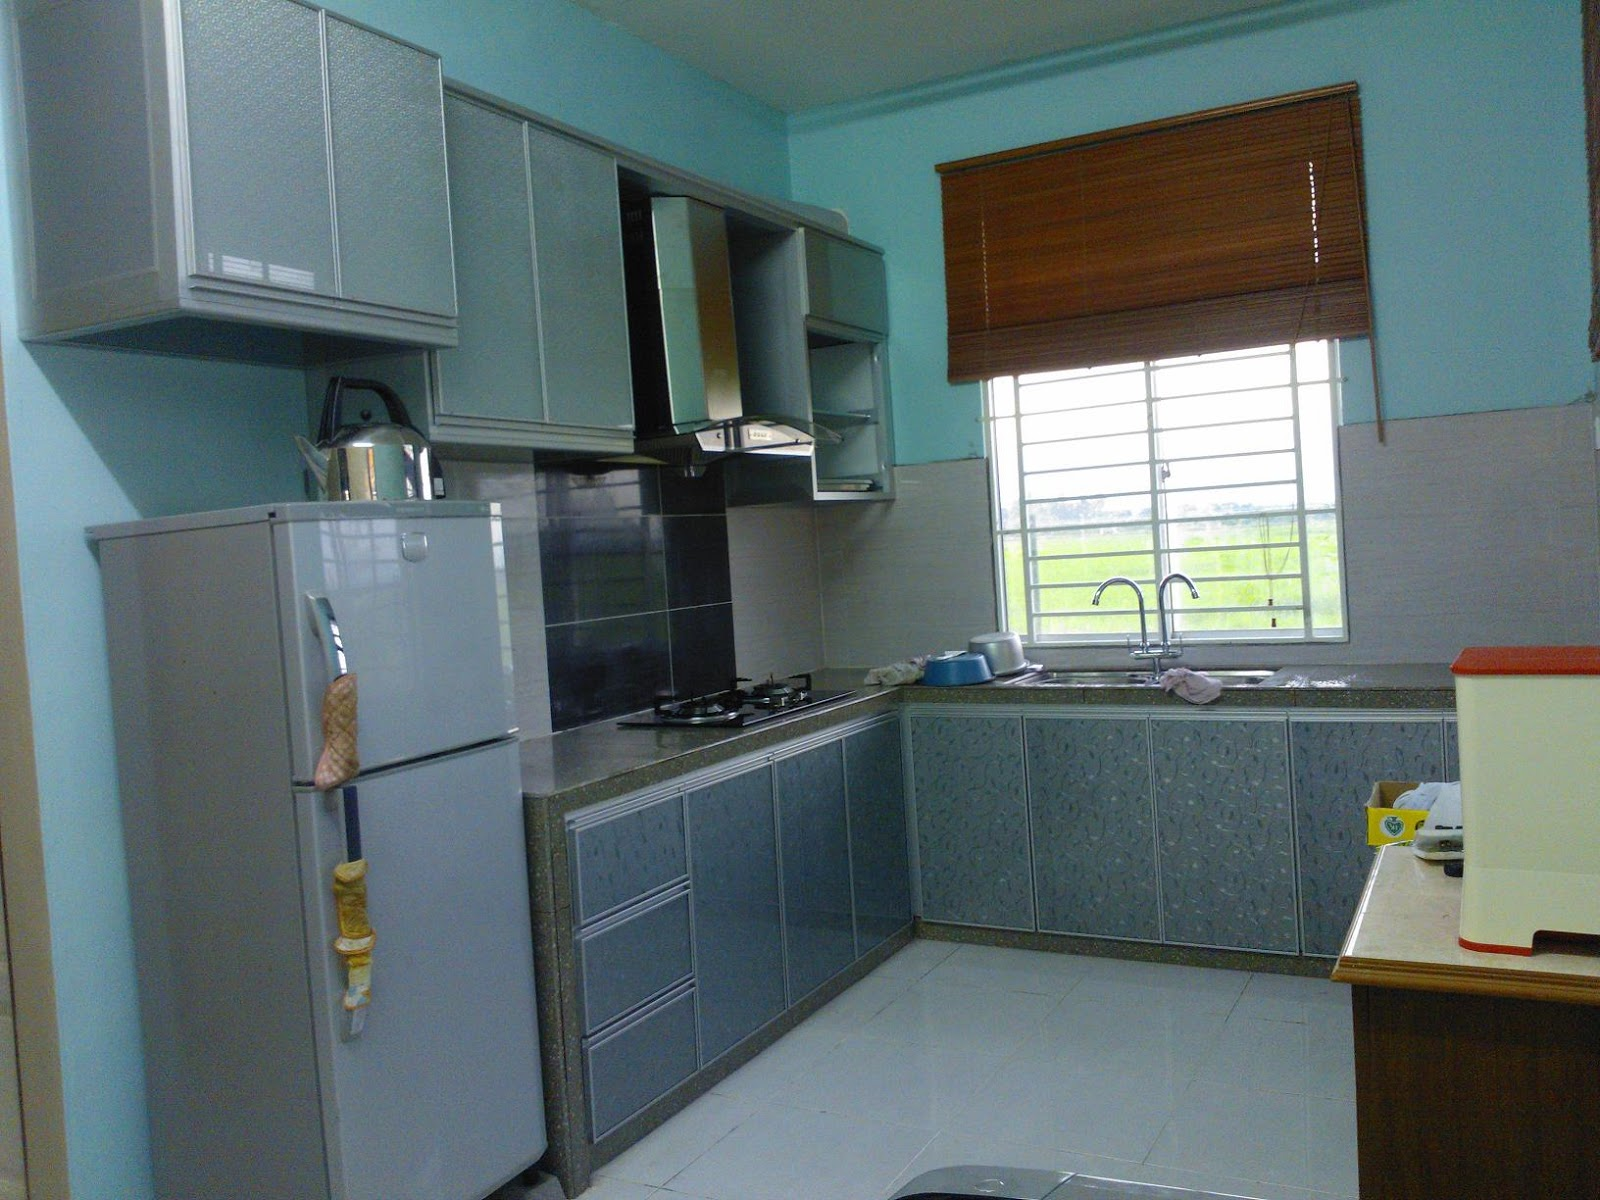 Kabinet dapur kecil 2014 ask home design for Harga kitchen cabinet 2016